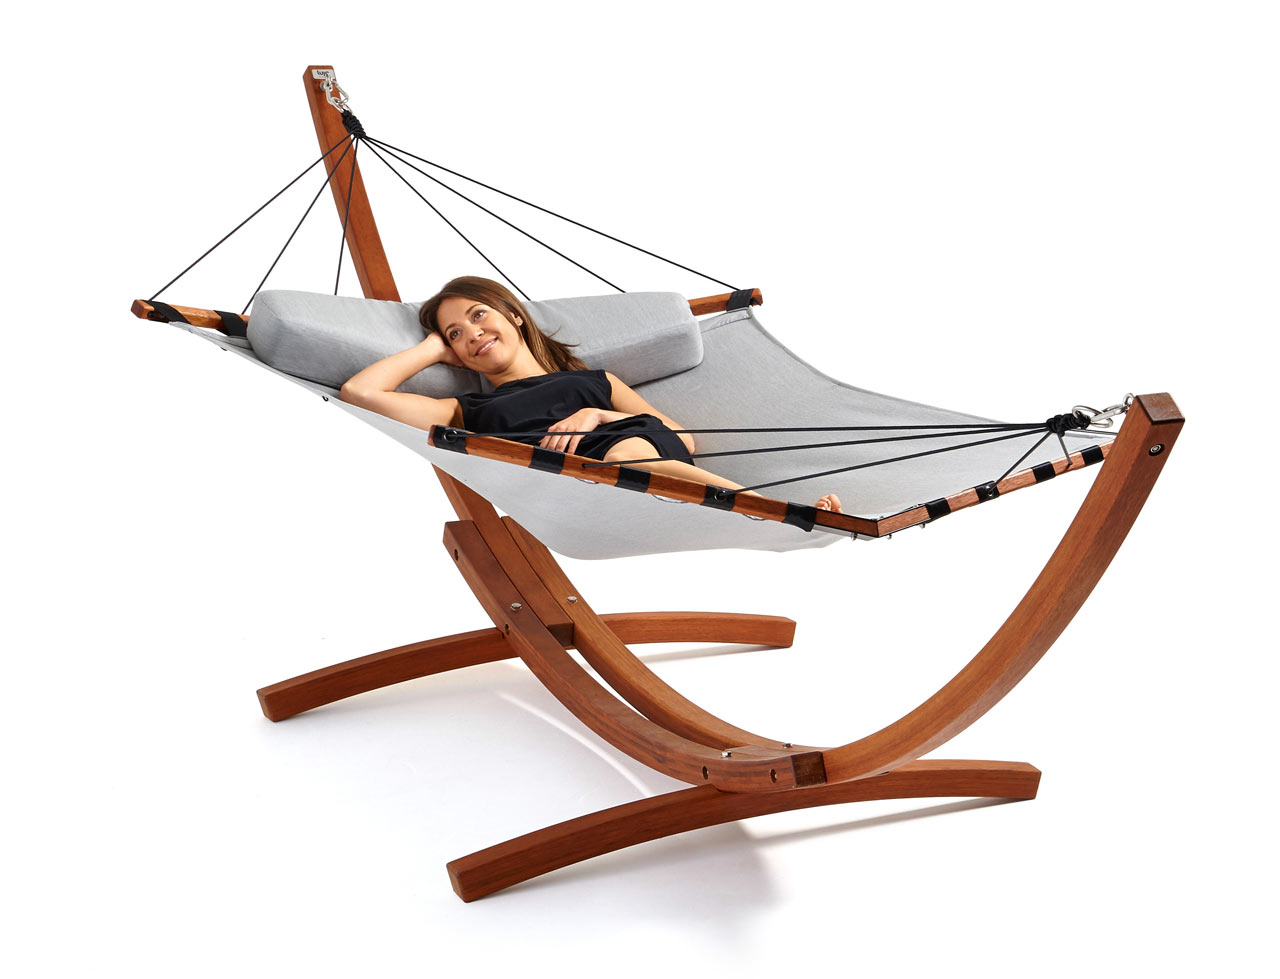 modern hammocks from lujo     get out  modern hammocks from lujo   design milk  rh   design milk